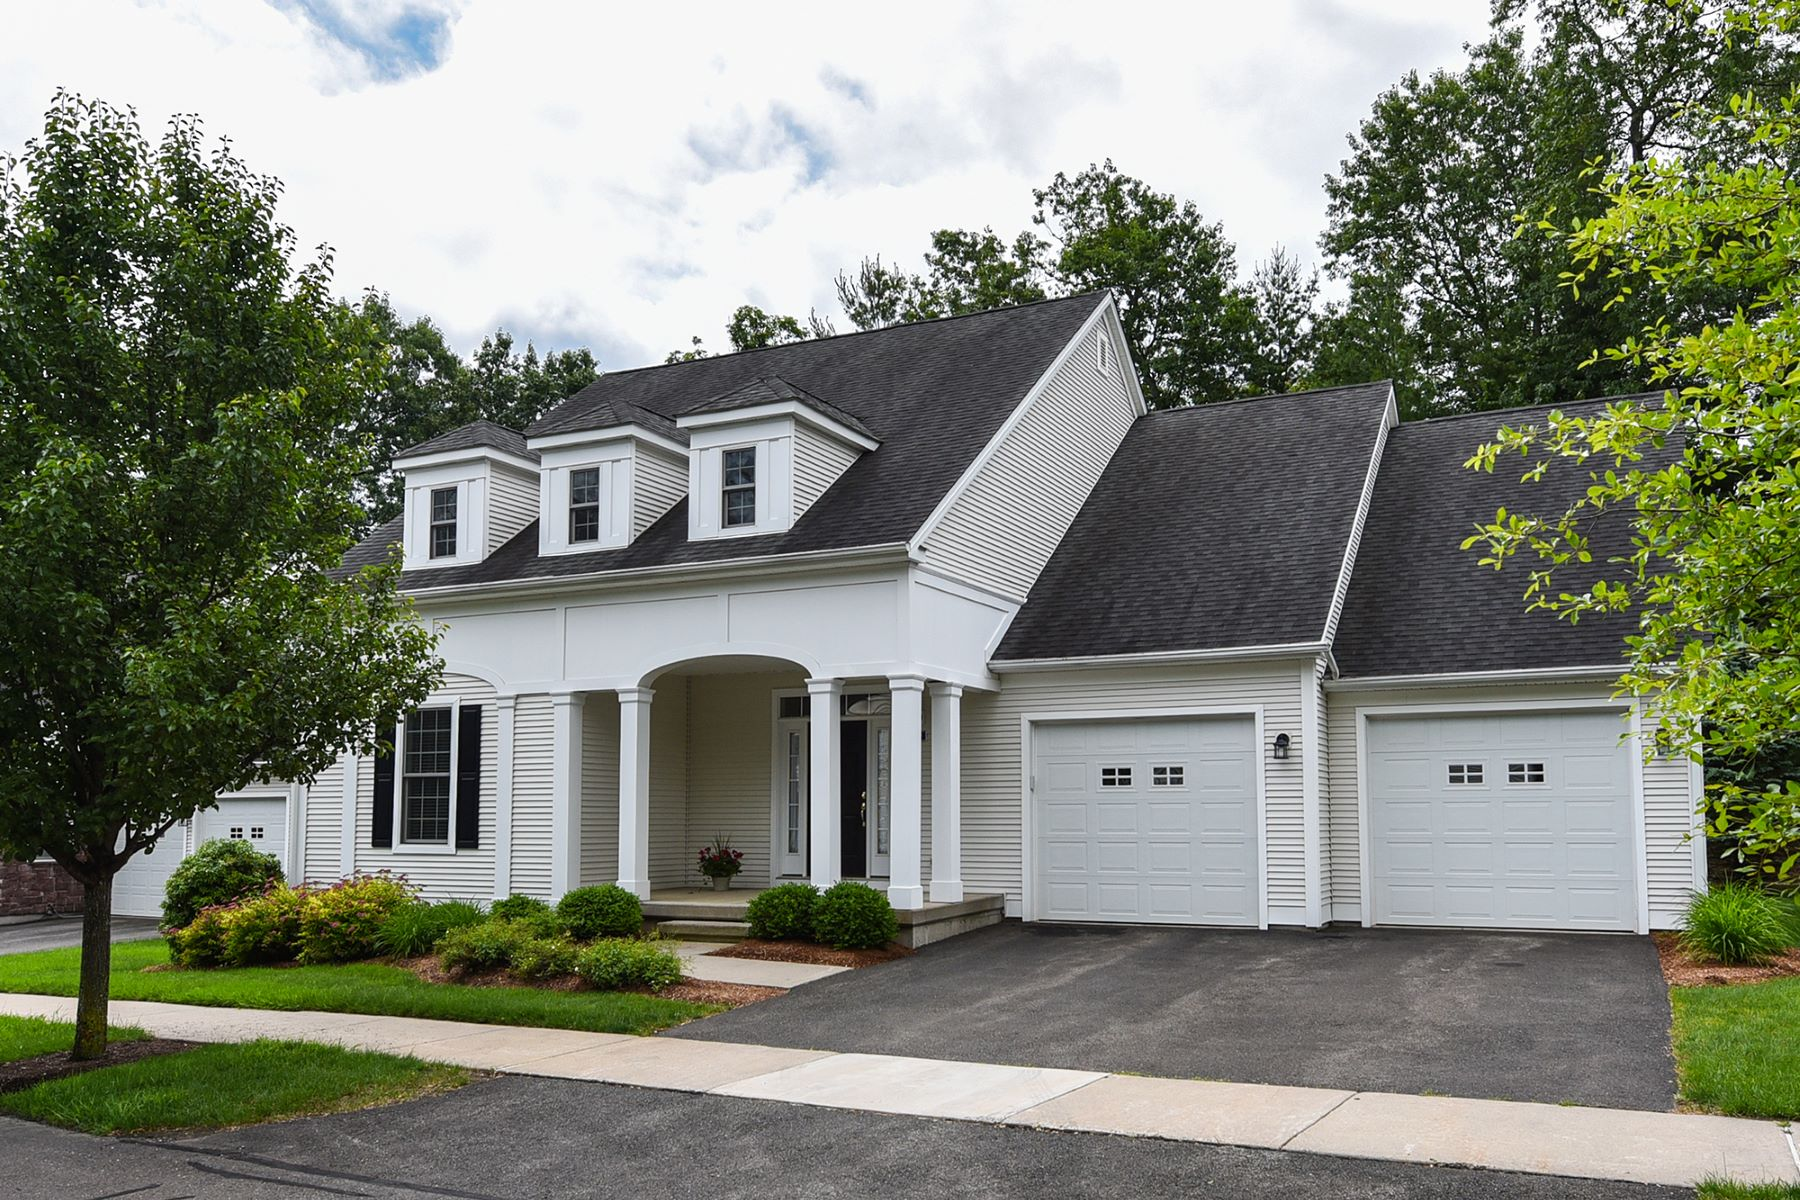 Single Family Homes voor Verkoop op 39 Ashton Circle 39, Simsbury, Connecticut 06070 Verenigde Staten